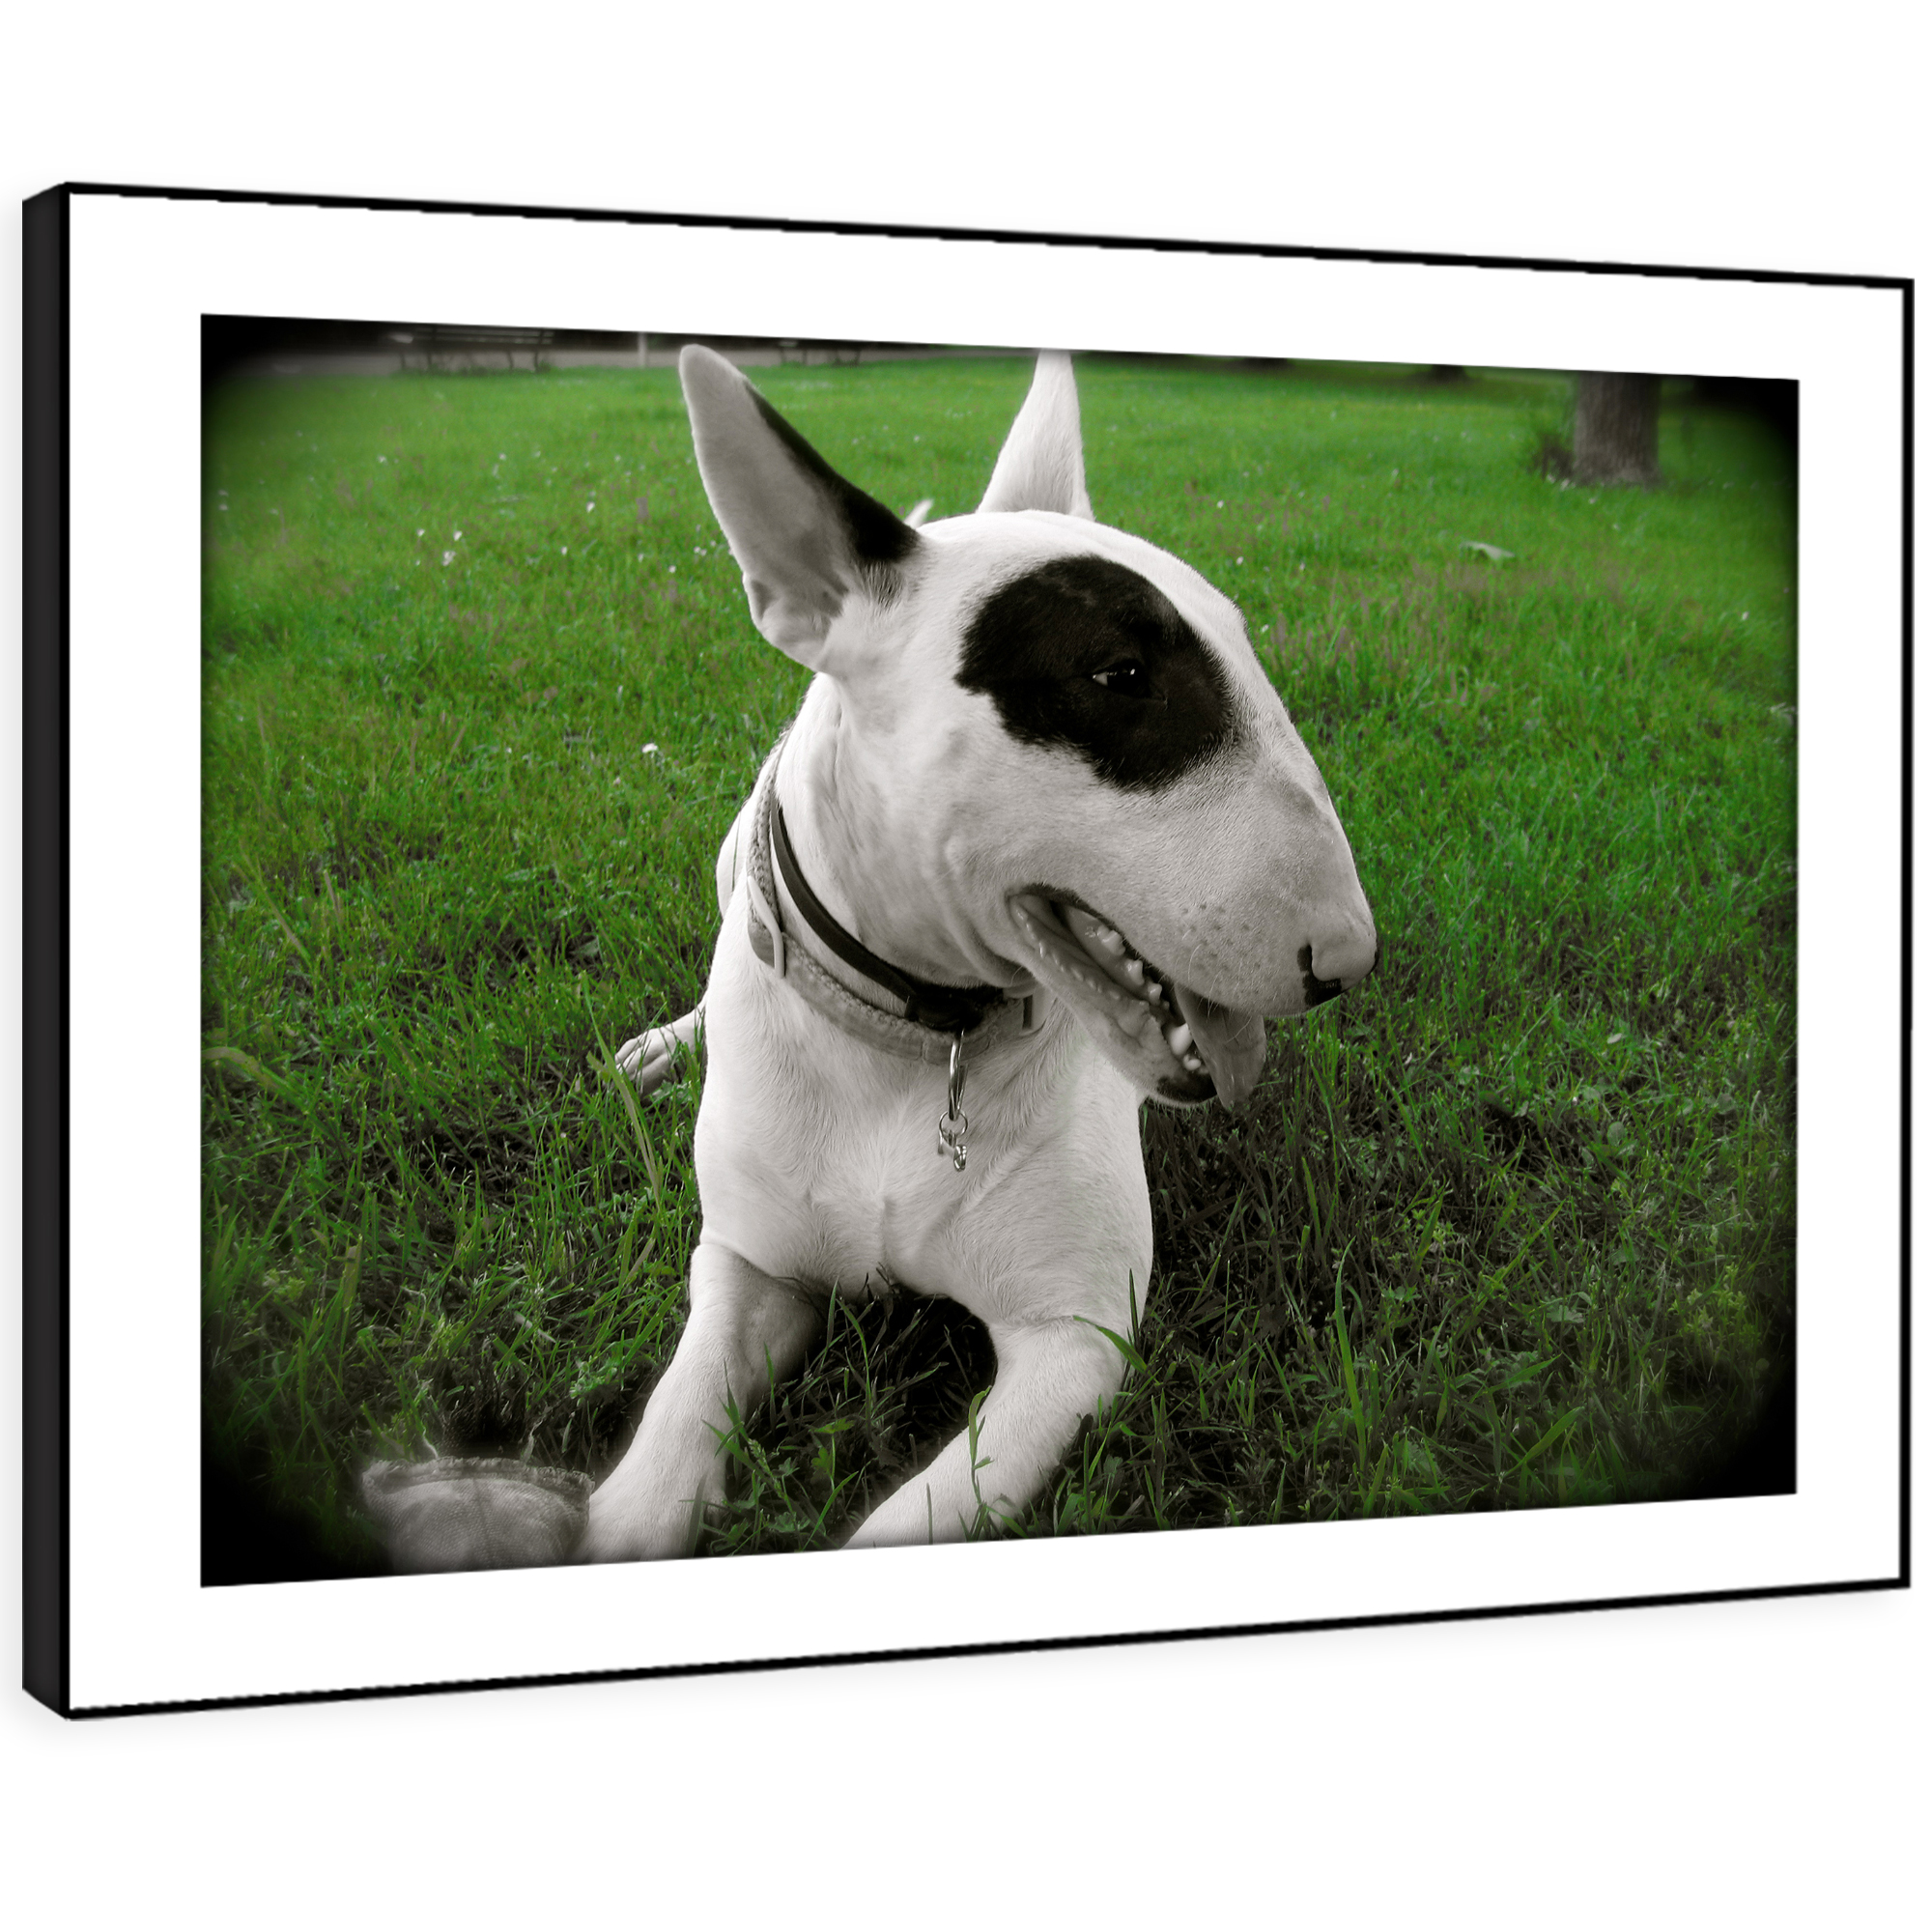 A193 Weiß Bull Terrier Dog Funky Animal Framed Wall Art Large Picture Prints